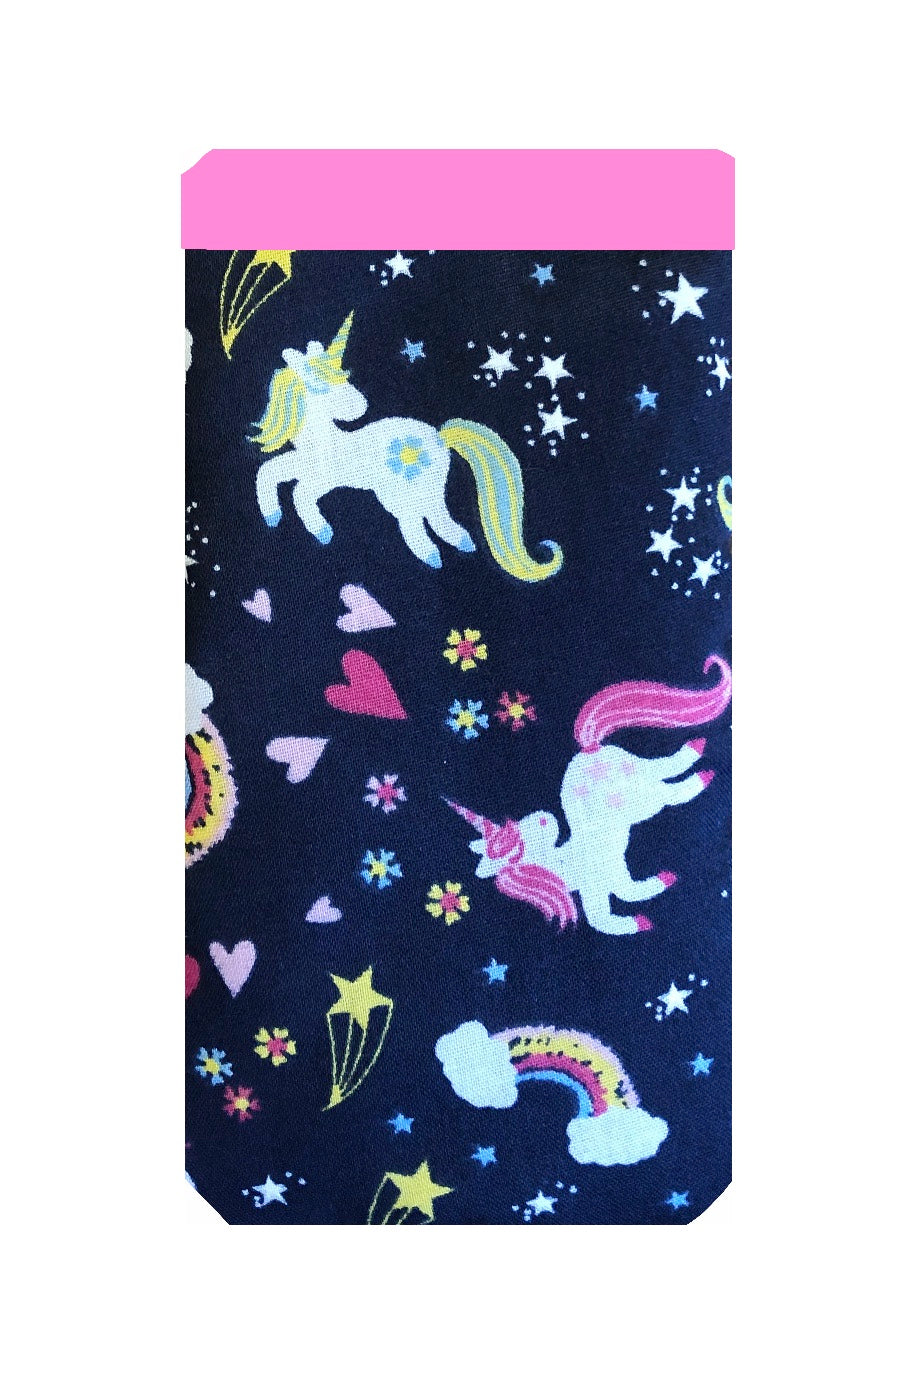 Navy Unicorn Print Mobile Phone Sock Pouch - Miss Pretty London UK Limited